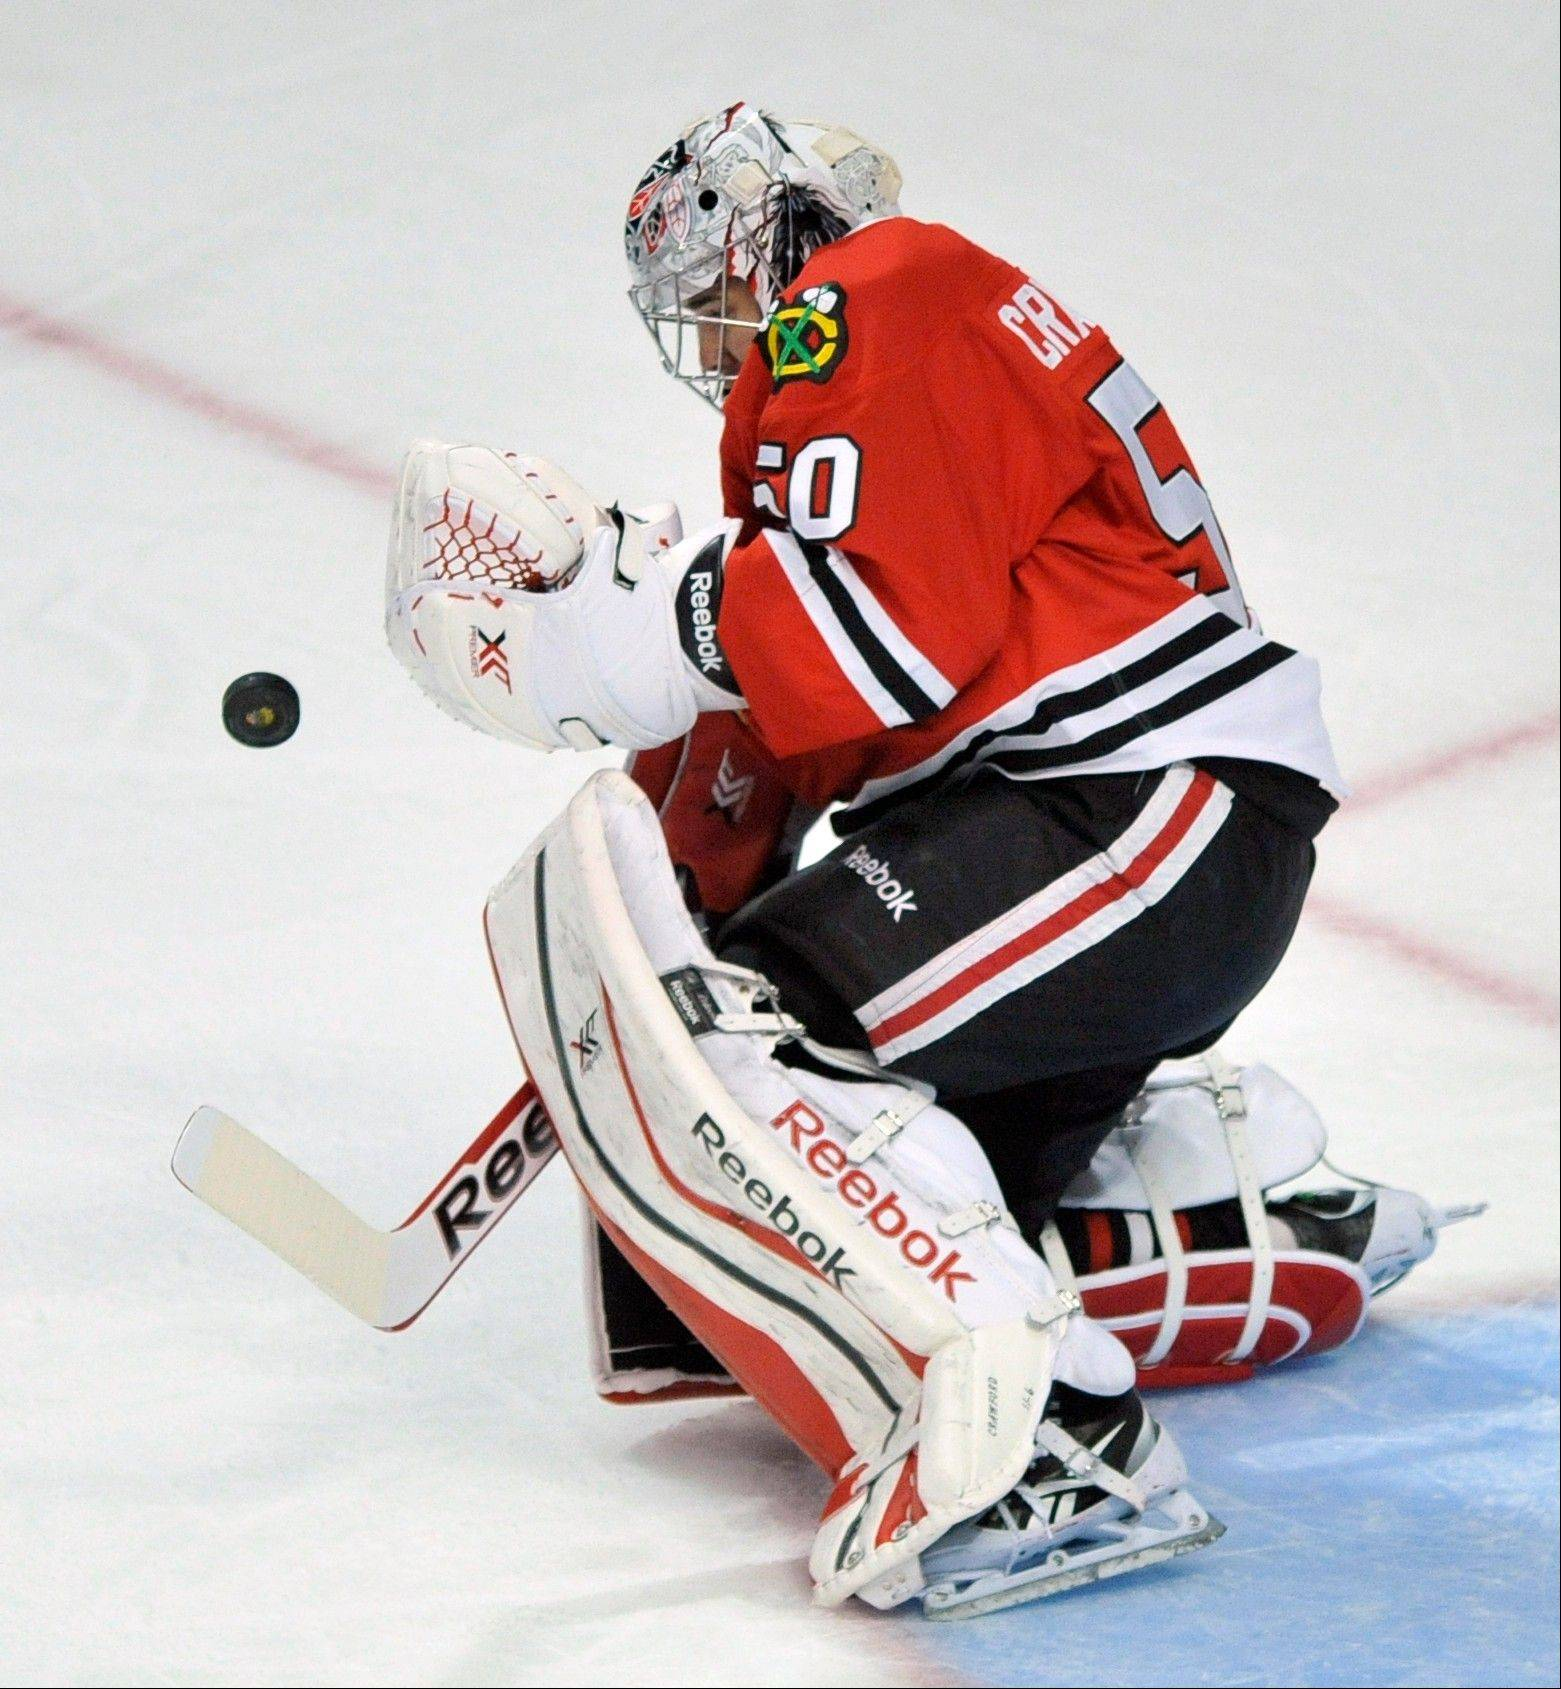 Chicago Blackhawks goalie Corey Crawford makes a save during the third period of an NHL hockey game against the San Jose Sharks in Chicago, Sunday, Jan., 5, 2014. San Jose won 3-2 in a shootout. (AP Photo/Paul Beaty)